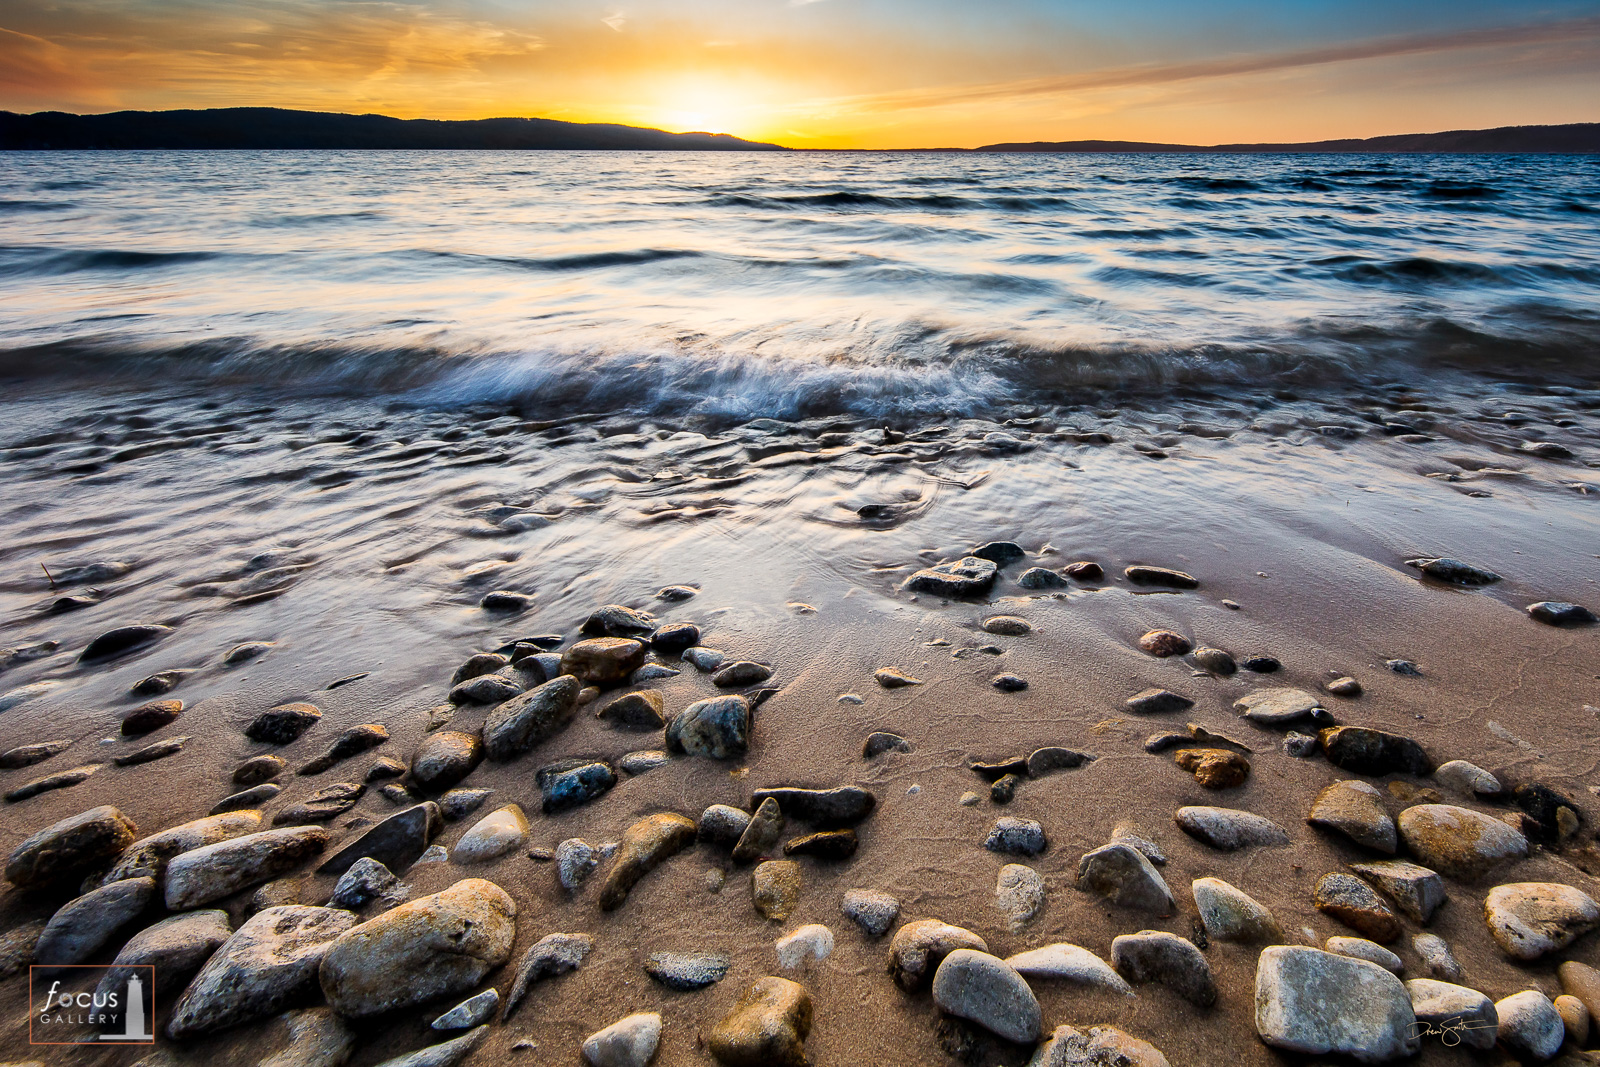 Photograph of waves at sunset on a rocky Crystal Lake shoreline in Benzie County, Michigan.